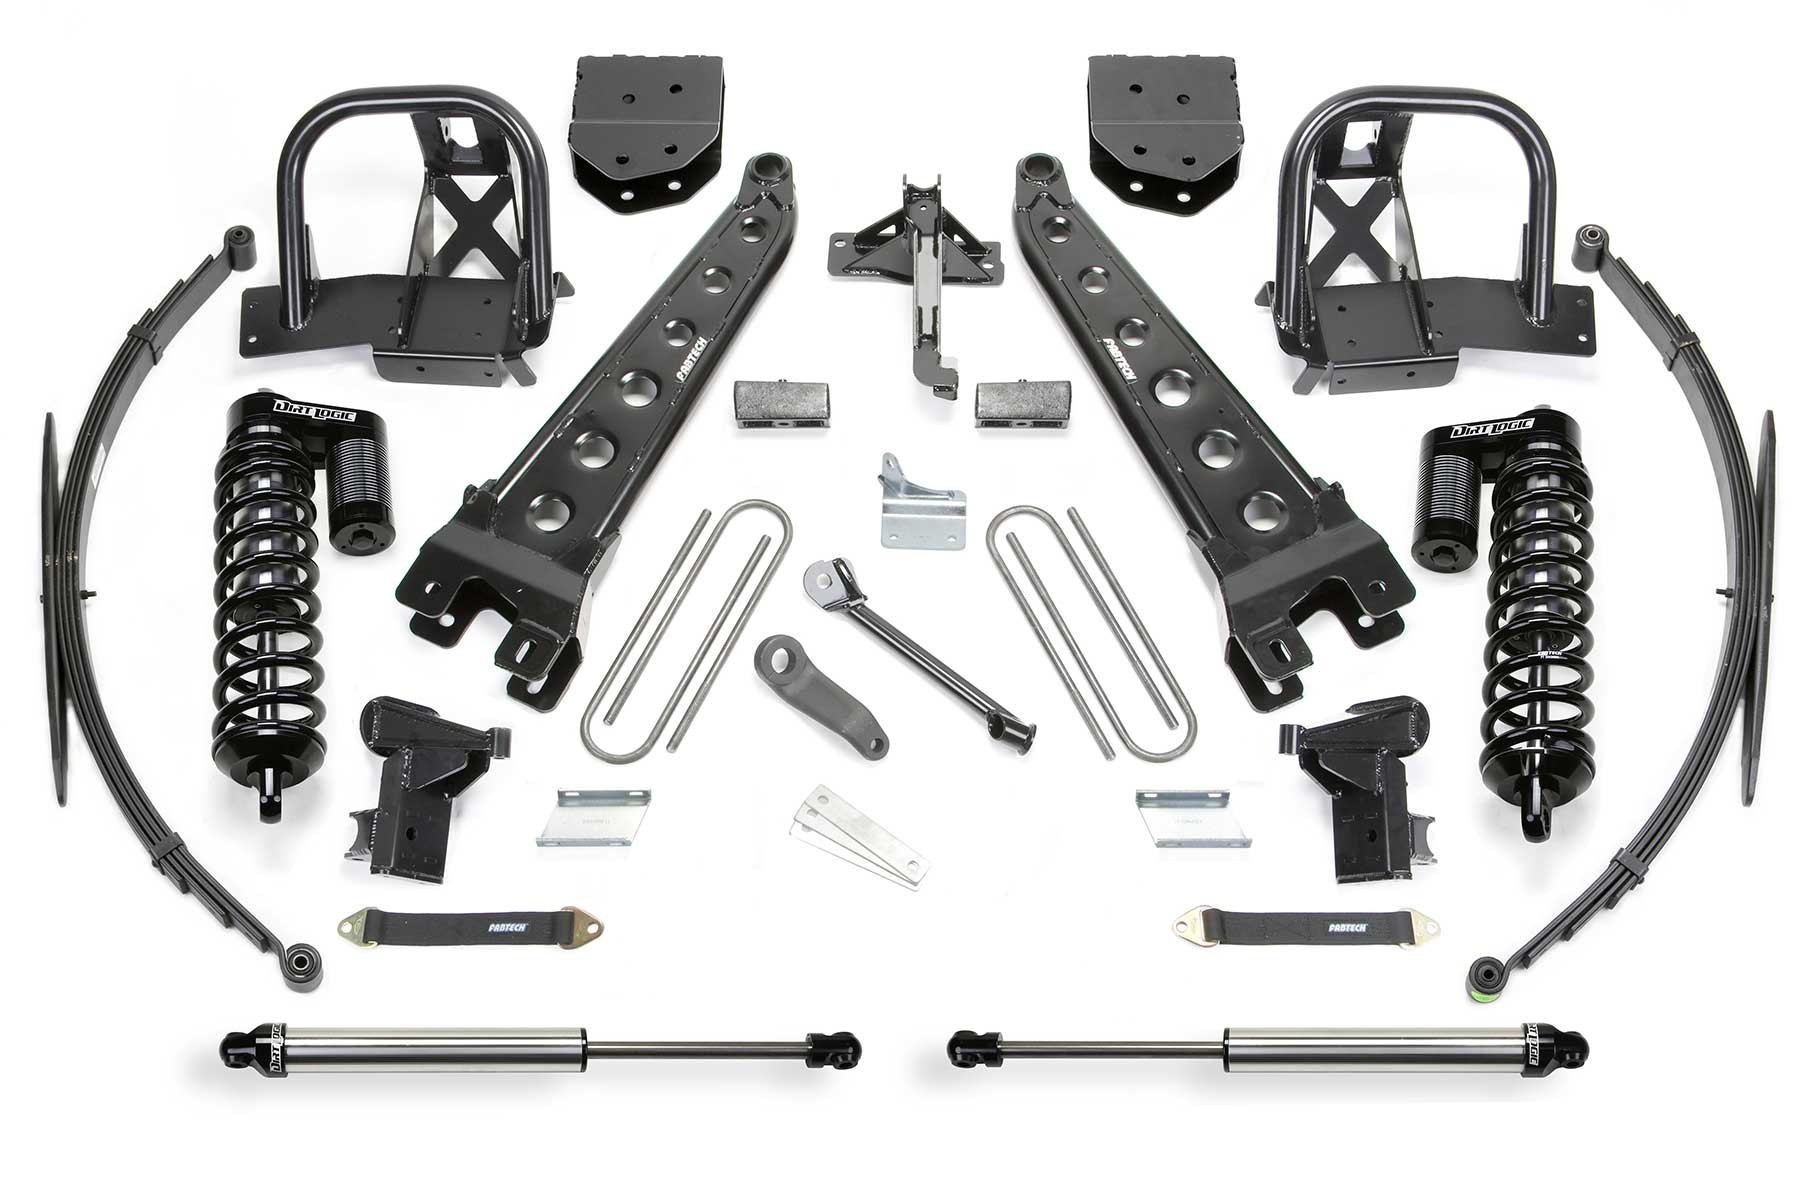 FABTECH- 2011-16 FORD F350 4WD & 2011-13 FORD F450 [8 LUG] 4WD- 10″ RADIUS ARM SYSTEM W/ DIRT LOGIC 4.0 COILOVERS & REAR DIRT LOGIC SHOCKS